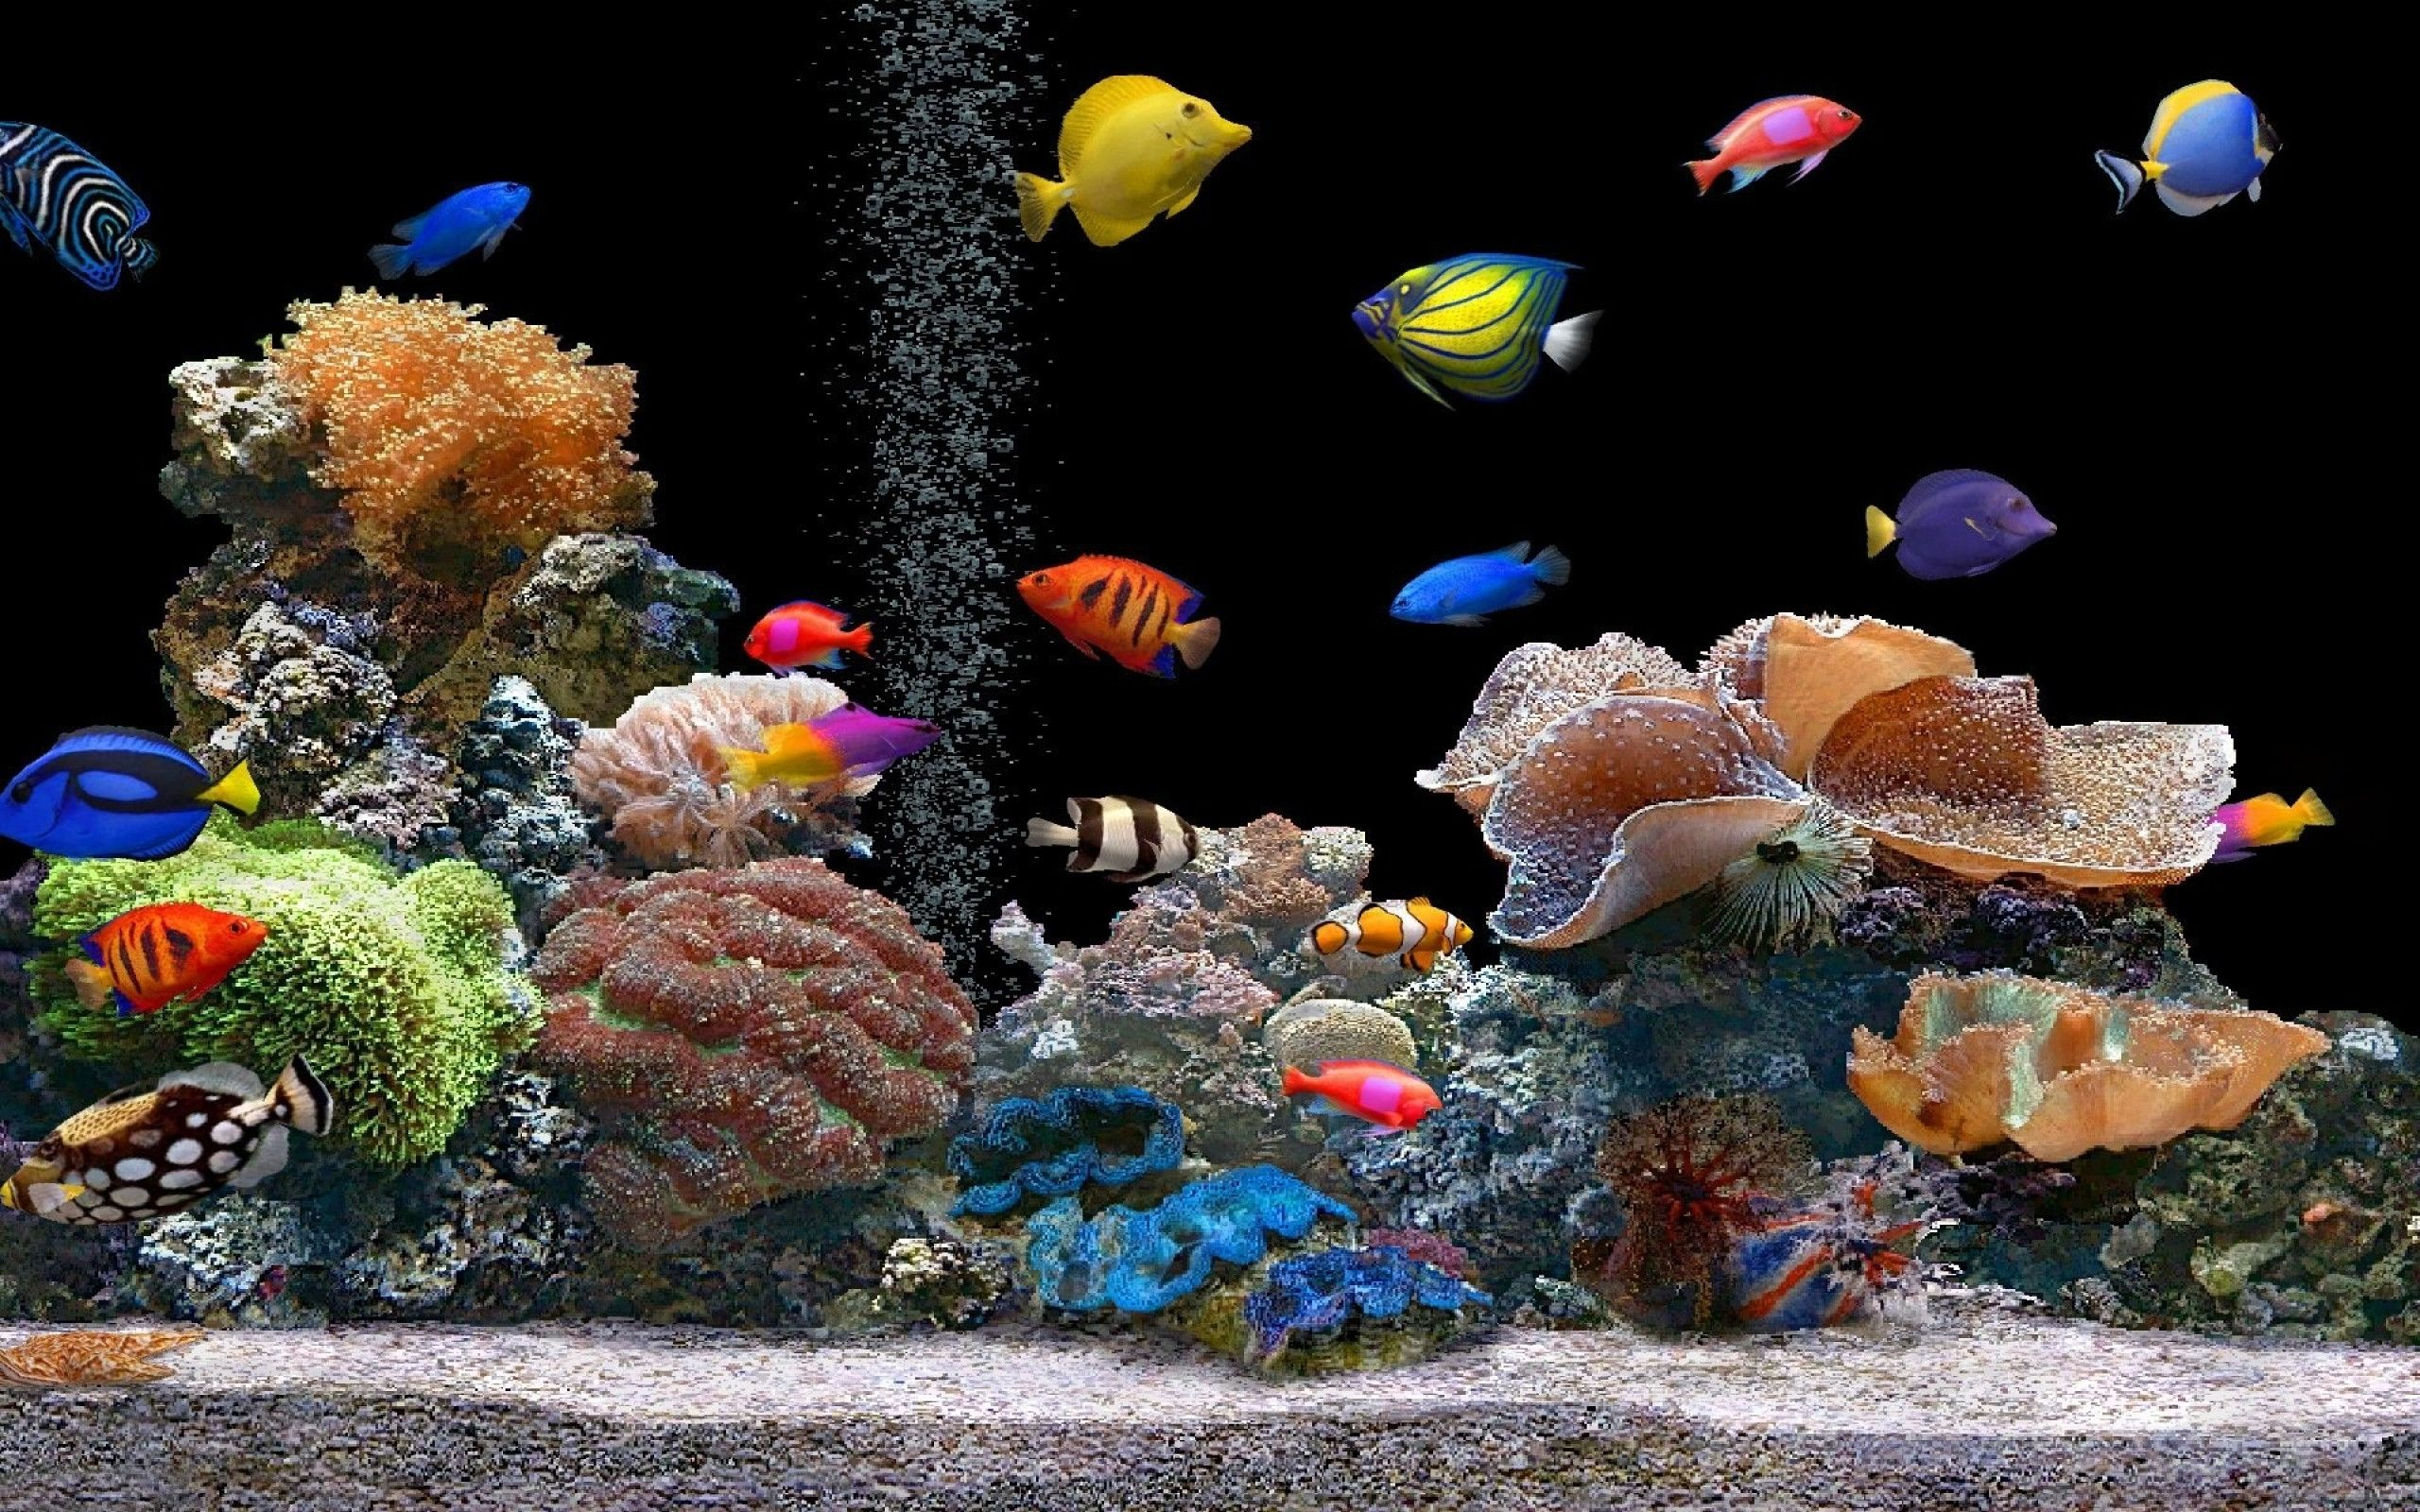 Tropical Fish Wallpapers 52 Top Free Tropical Fish Hd Wallpaper For Ios Check More At Https Thephoto In 2020 Fish Wallpaper Aquarium Backgrounds Underwater Wallpaper